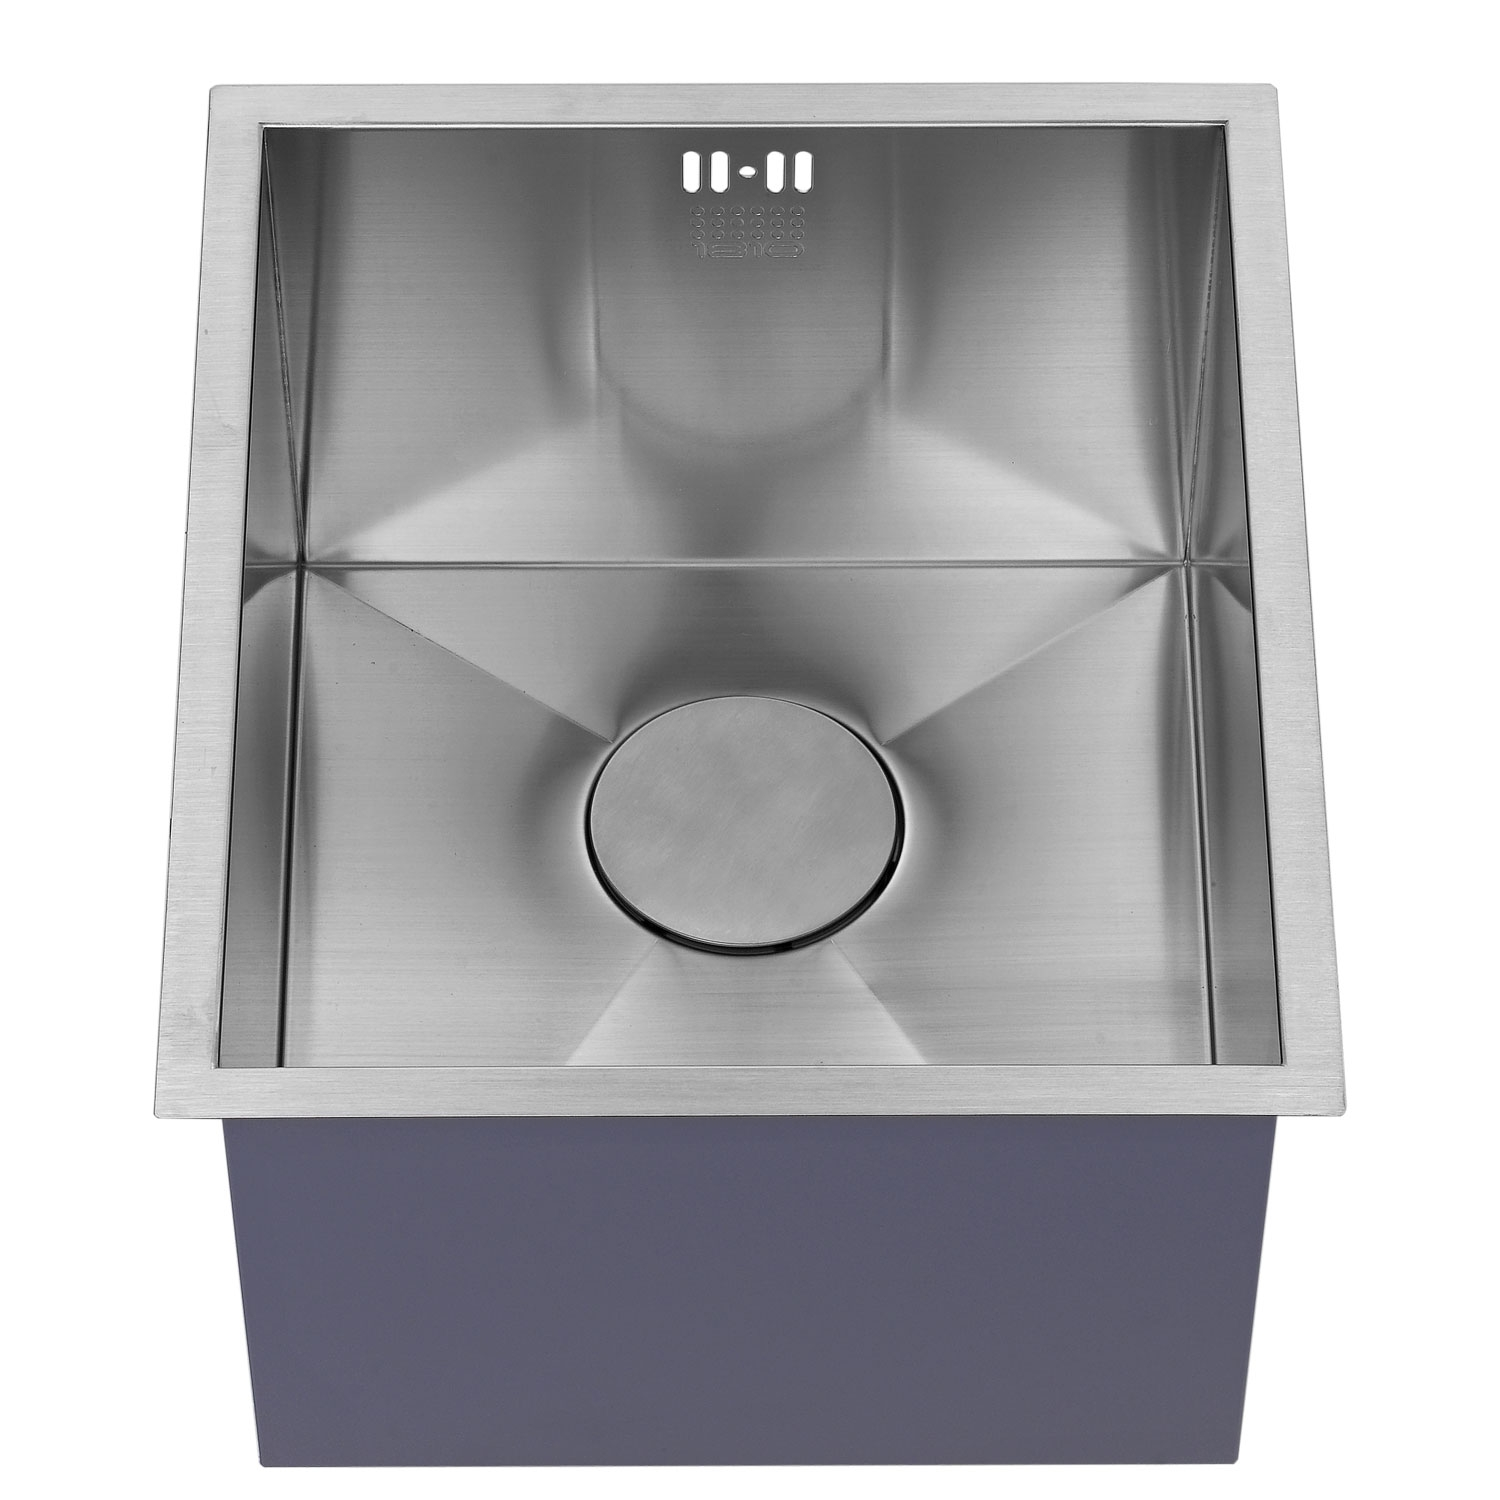 The 1810 Company Zenuno 340U Deep 1.0 Bowl Kitchen Sink - Stainless Steel-1